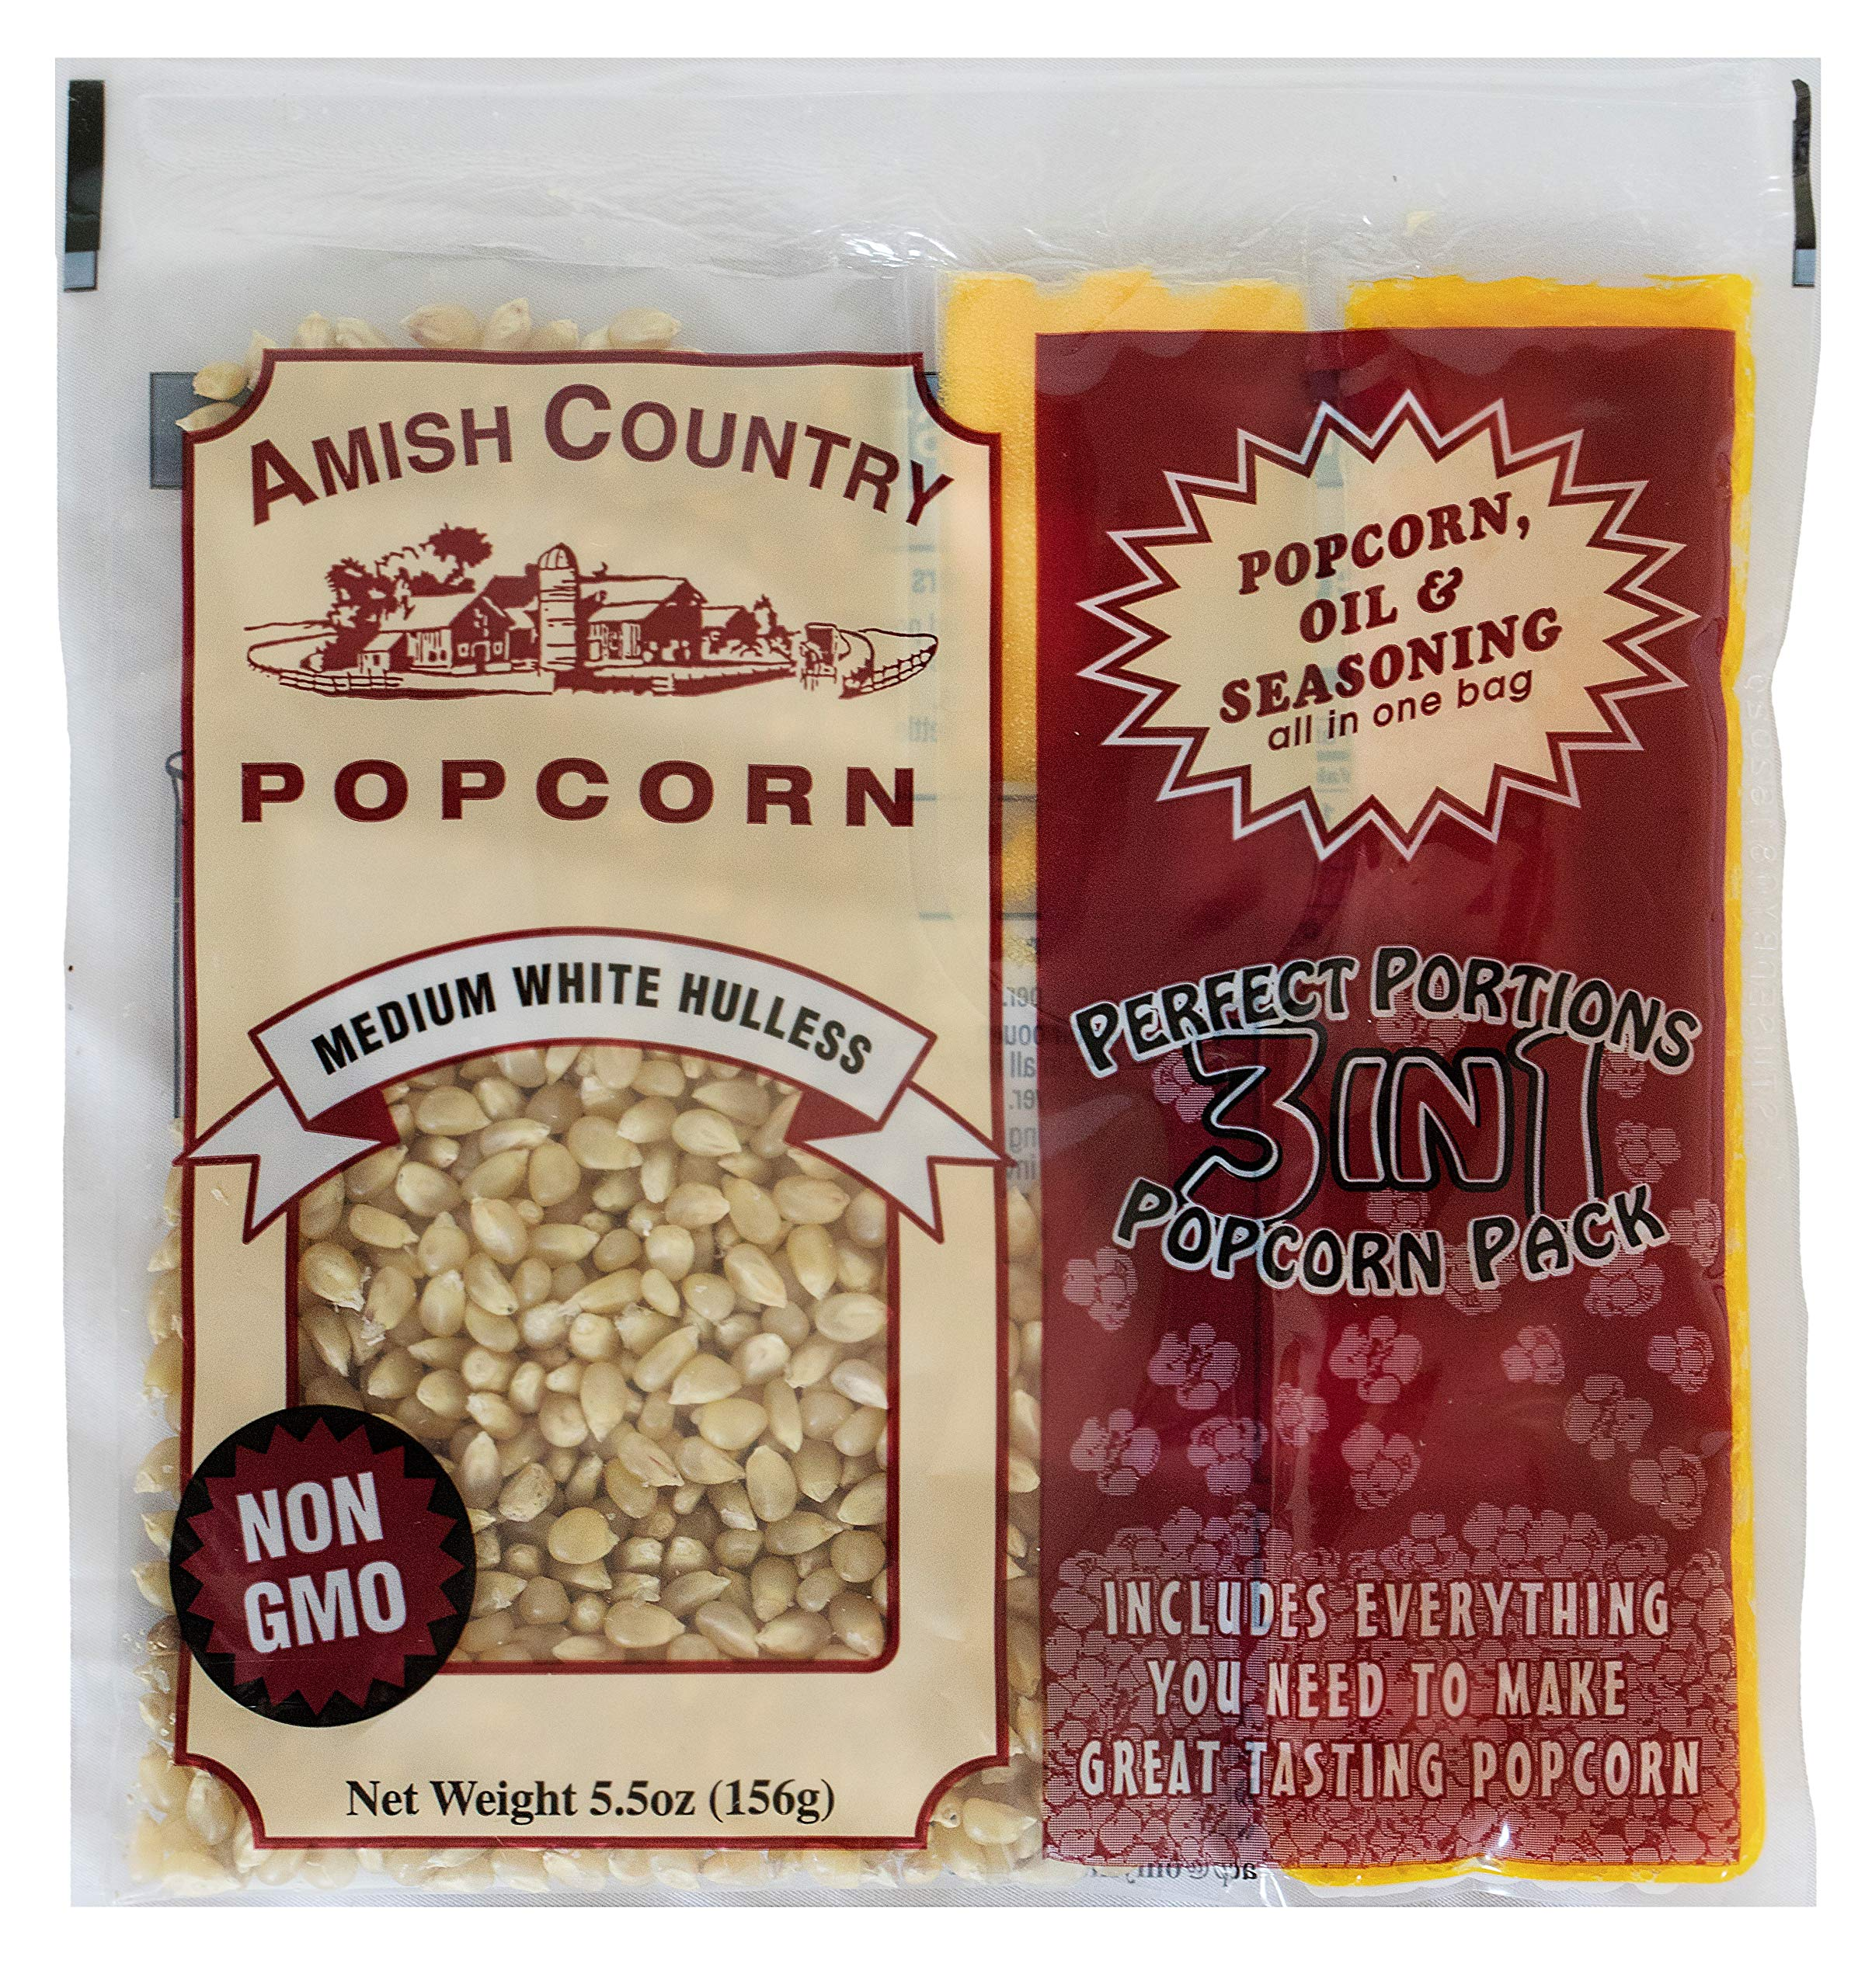 Amish Country Popcorn - (12) 4 Ounce Popcorn Portion Packs of Medium White Popcorn with Oil & Salt - 12 Per Case - Old Fashioned with Recipe Guide